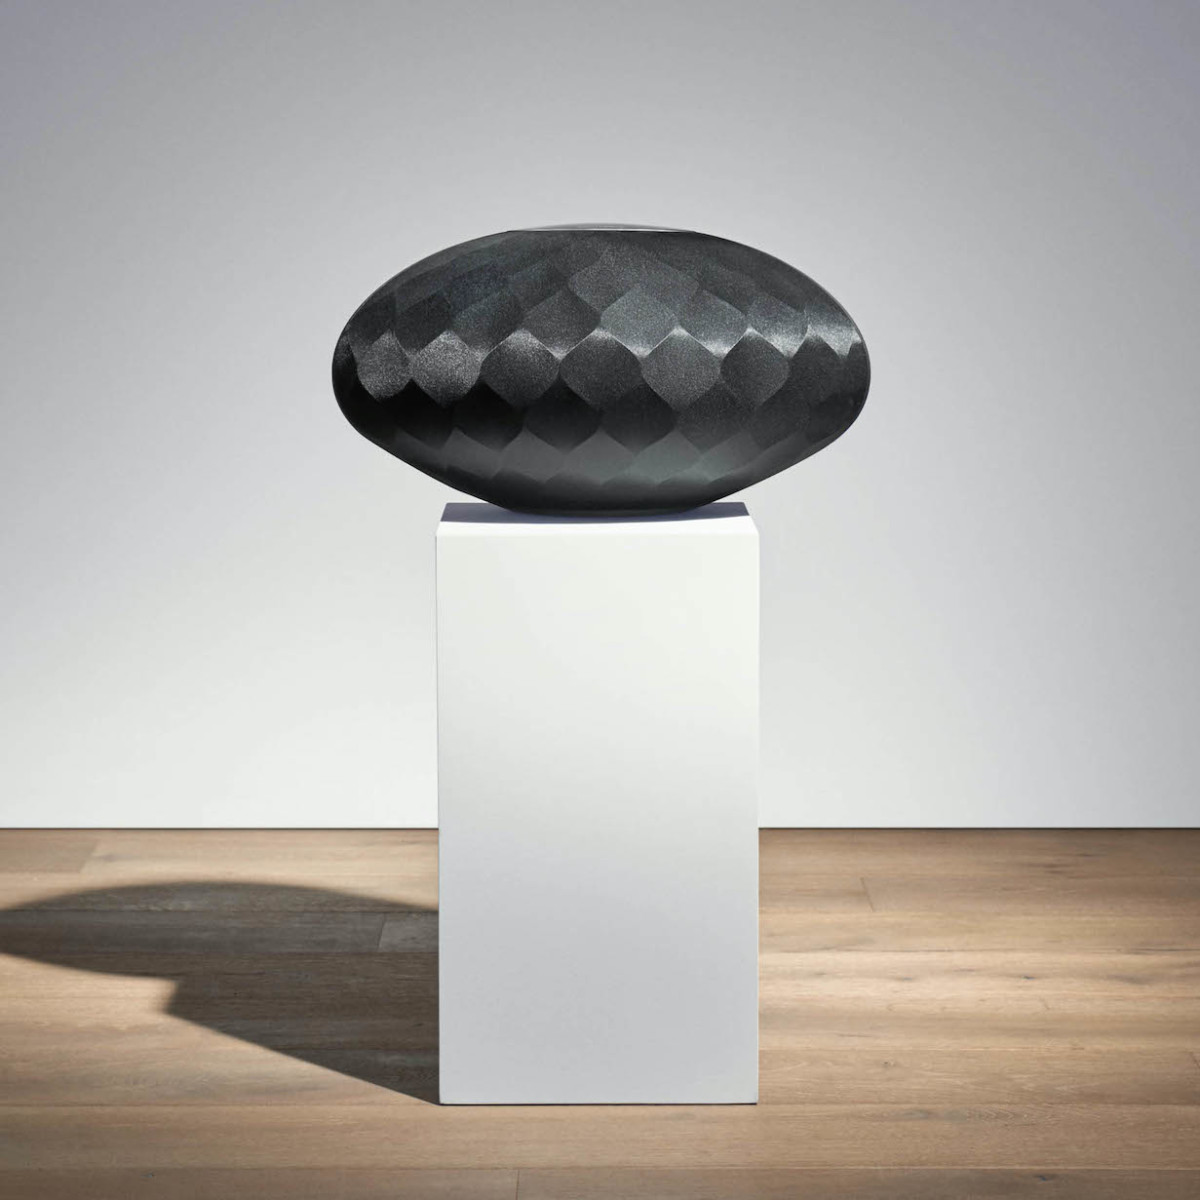 Bowers & Wilkins Formation Wedge Angled Speaker creates room-filling sound